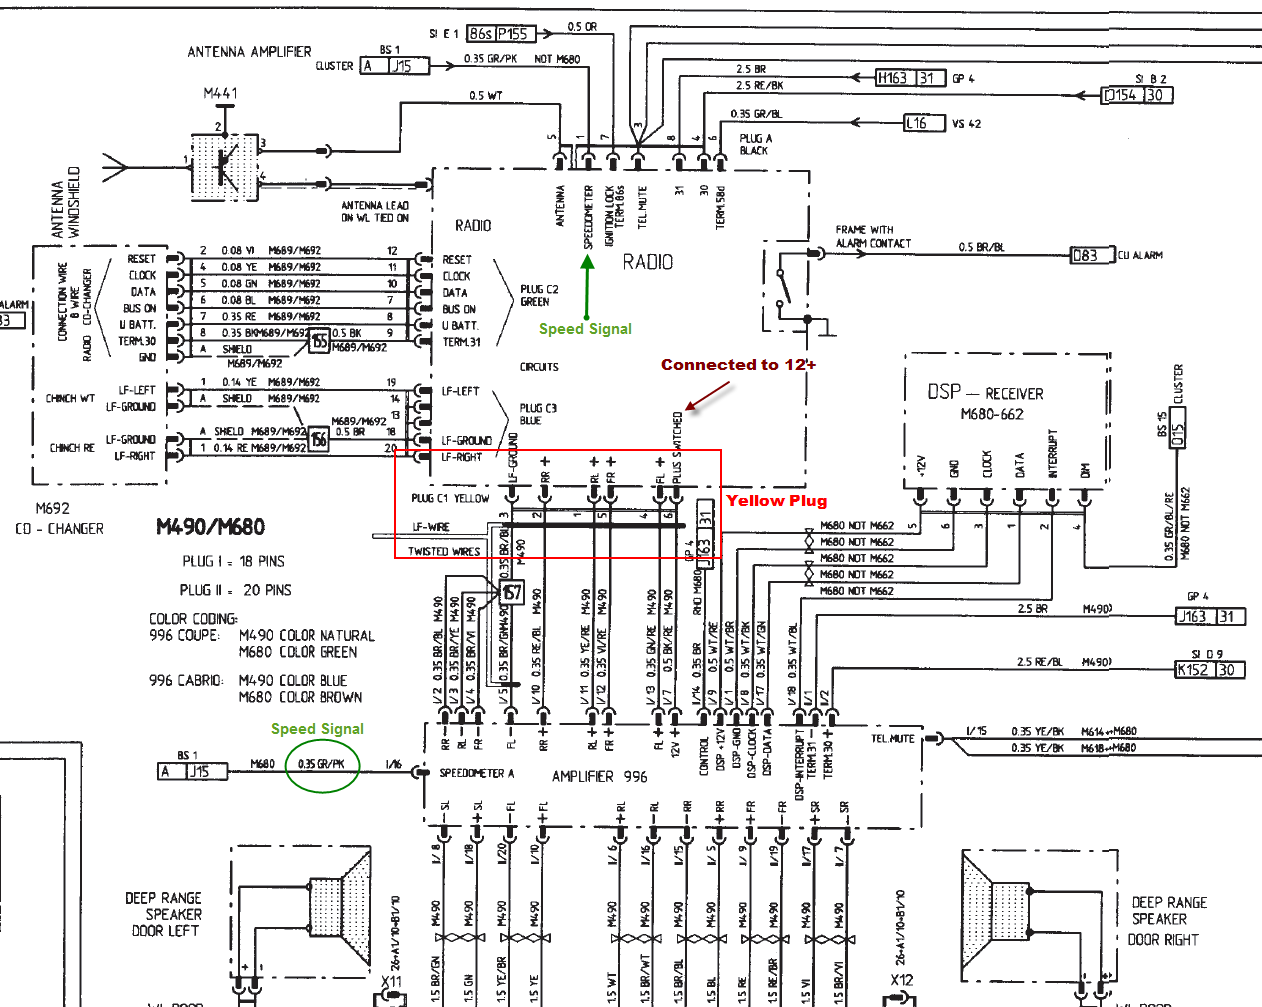 80 radiowiring_5a64549eac81f27f3f250d4ad01b4bb18b4d62d3 100 [ mini cooper clubman wiring diagram ] mini cooper r55 r56 2003 mini cooper wiring diagram at cos-gaming.co